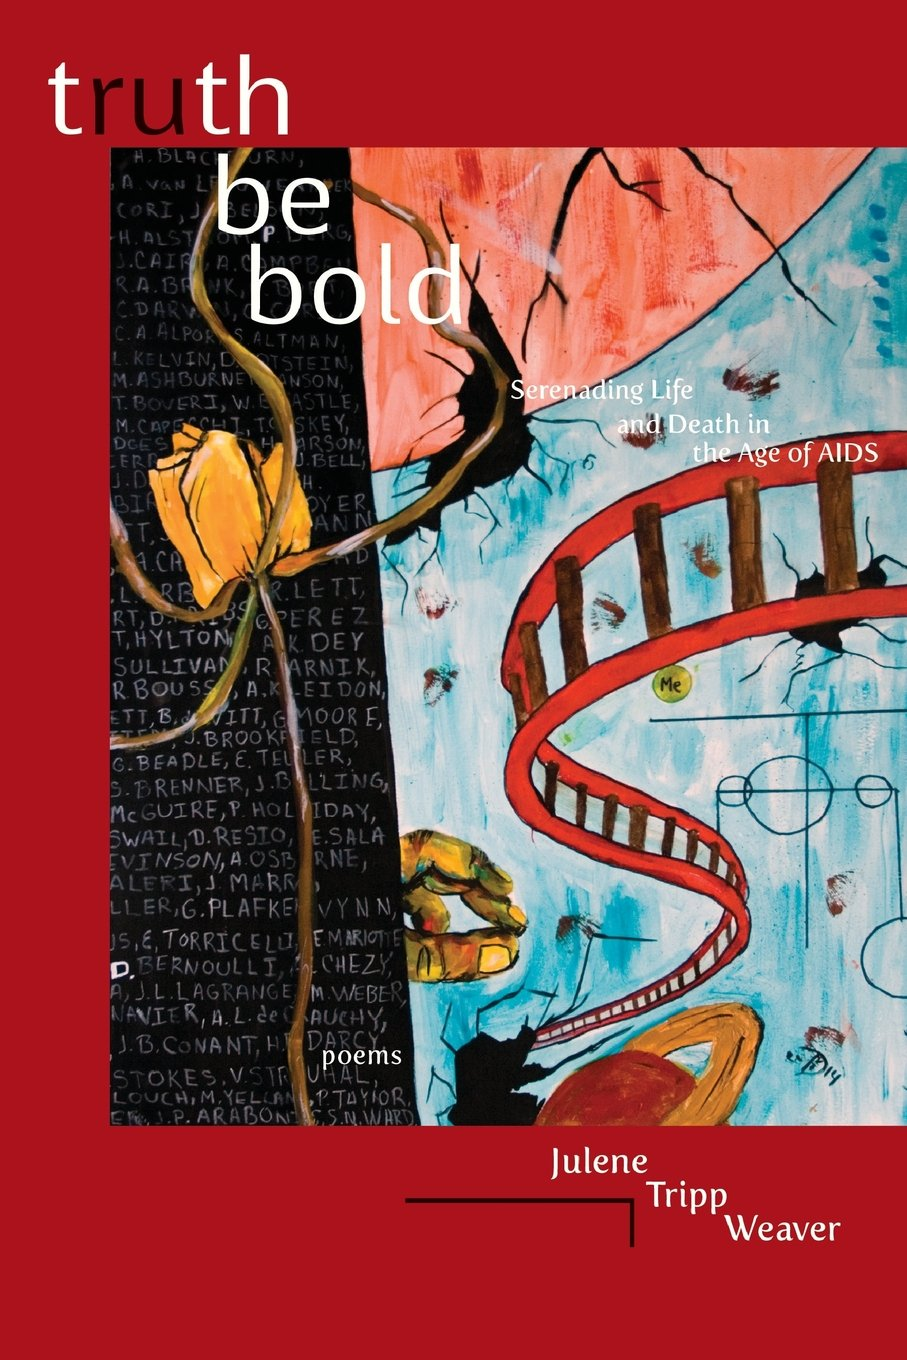 Read Online Truth Be Bold: Serenading Life & Death in the Age of AIDS pdf epub